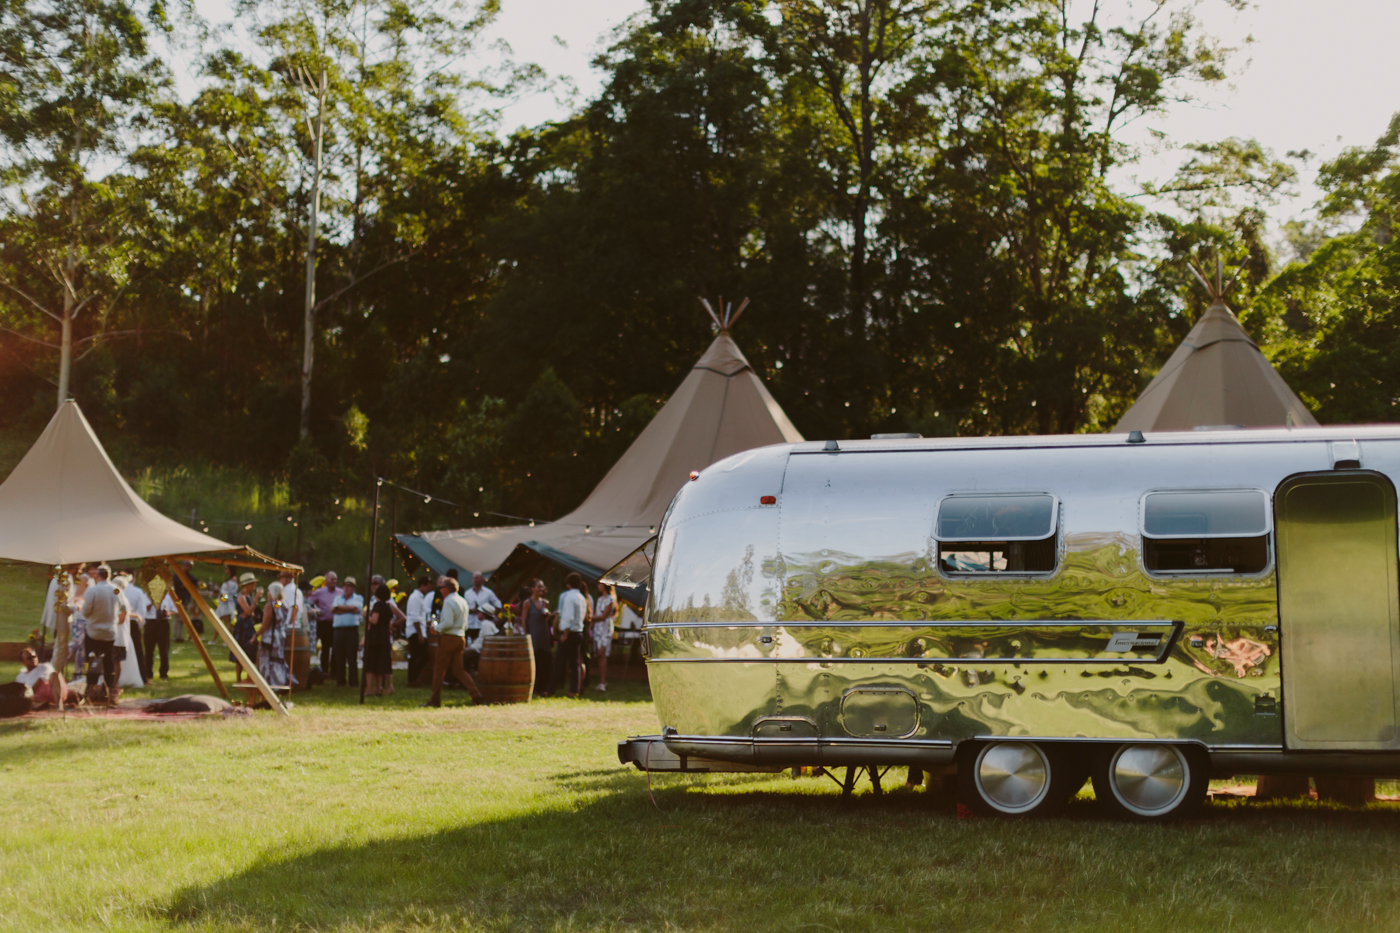 austral affairs, vintage caravan, tipi wedding, gold coast weddings, marquee hire, large marquee hire, event hire, tipi wedding